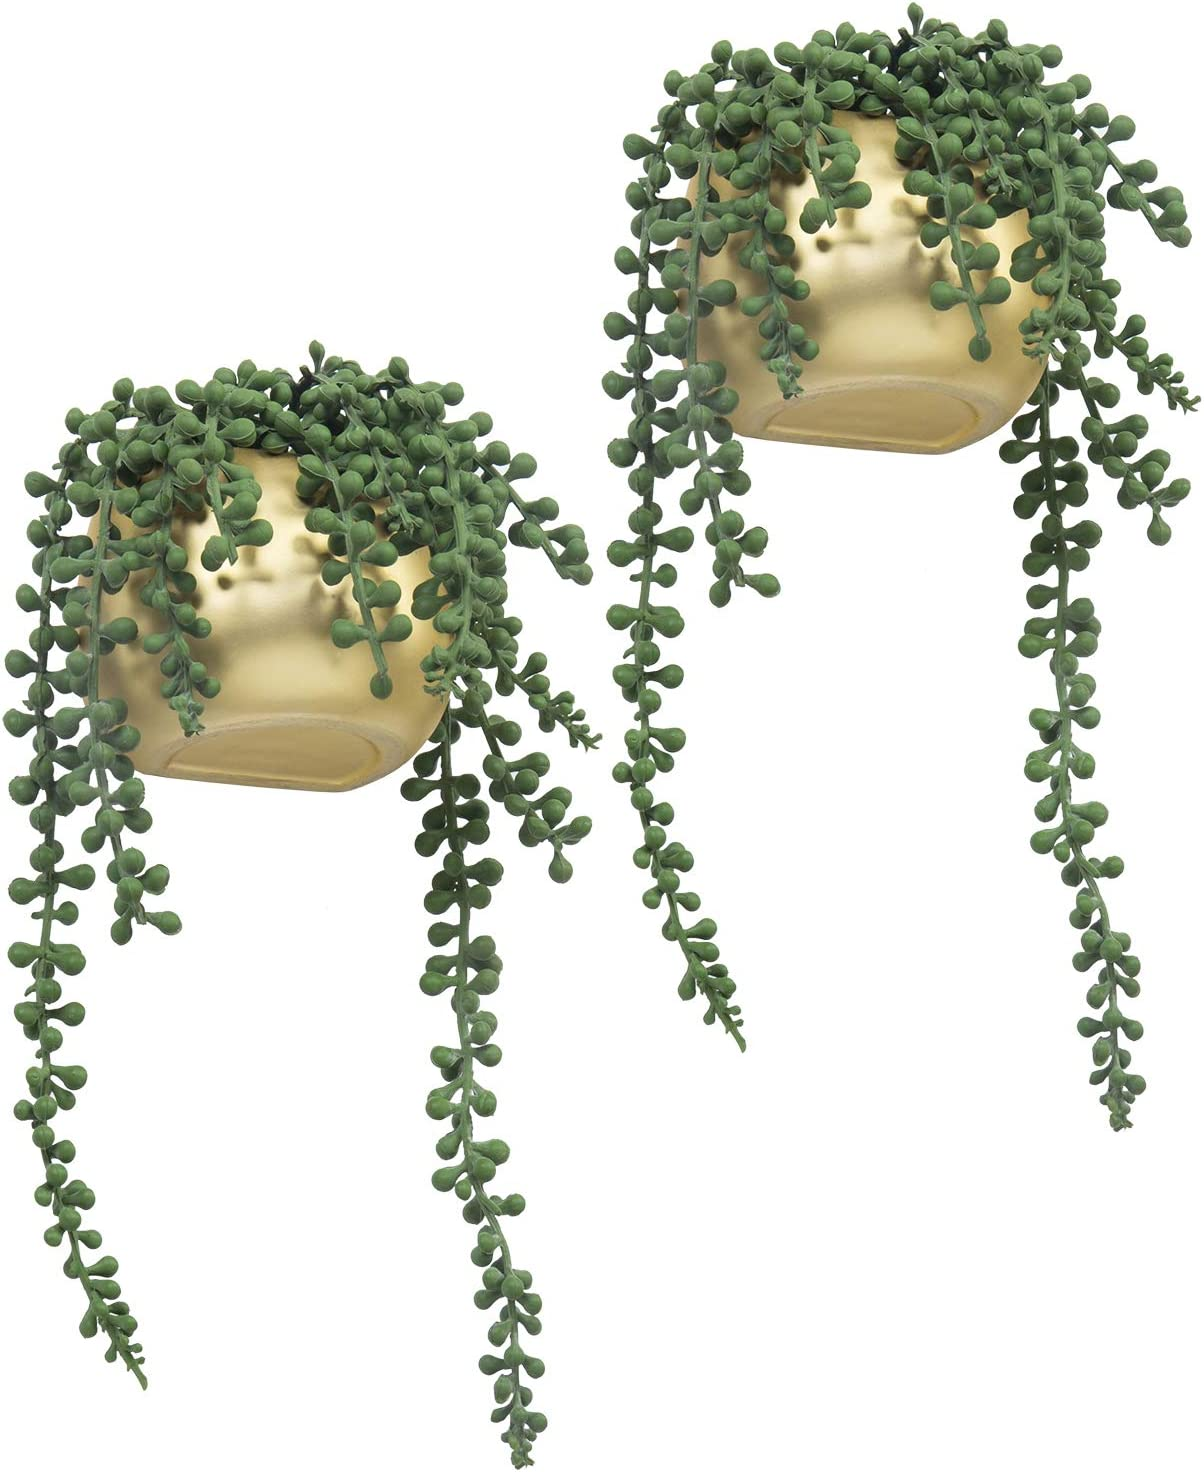 MyGift 10 Inch Wall-Mounted Artificial String of Pearls Plants in Brass Ceramic Planters, Set of 2